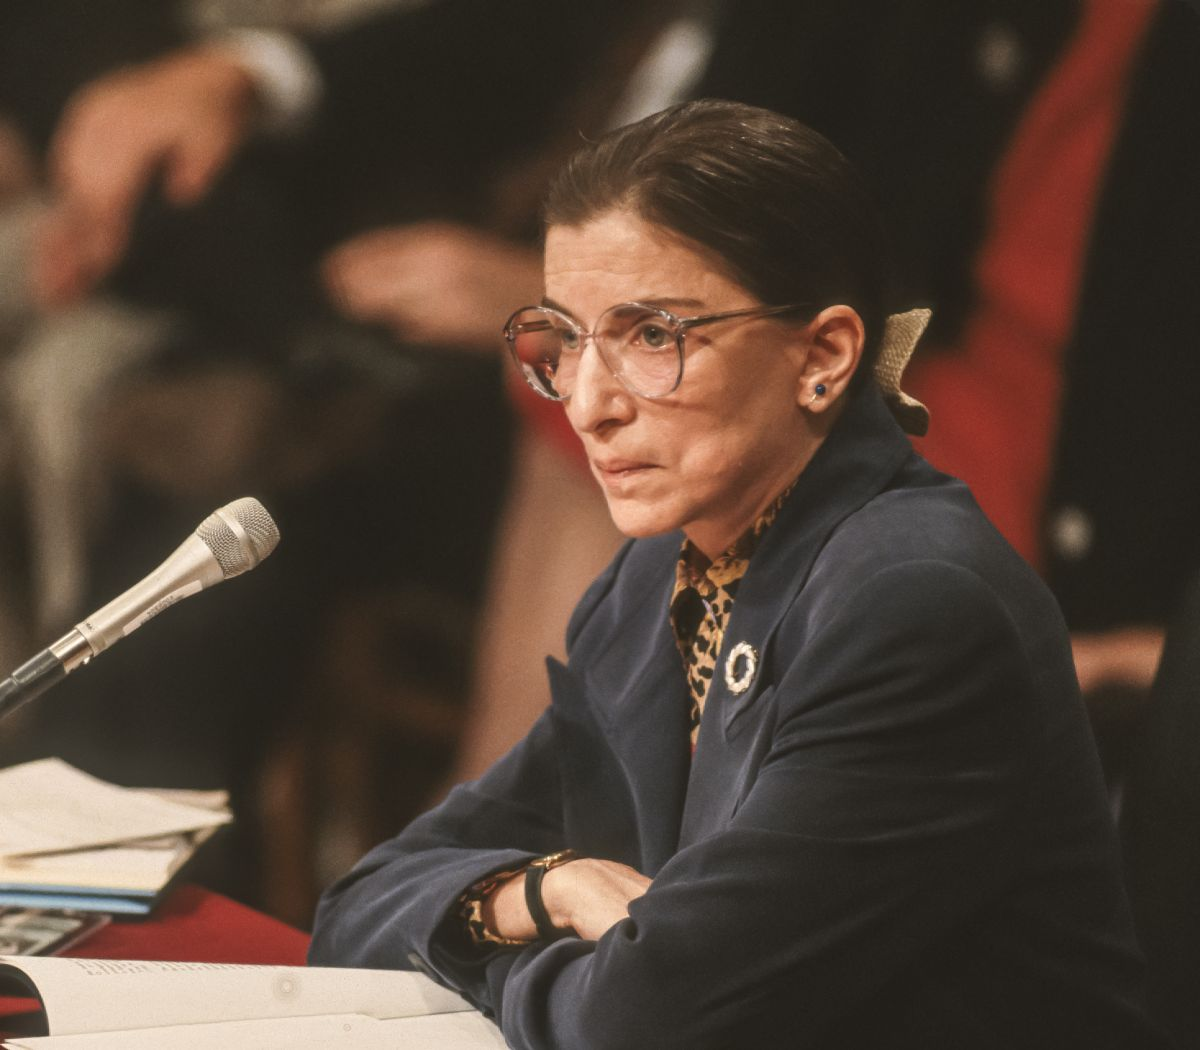 Astronauts, NASA chief mourn death of Supreme Court Justice Ruth Bader Ginsburg